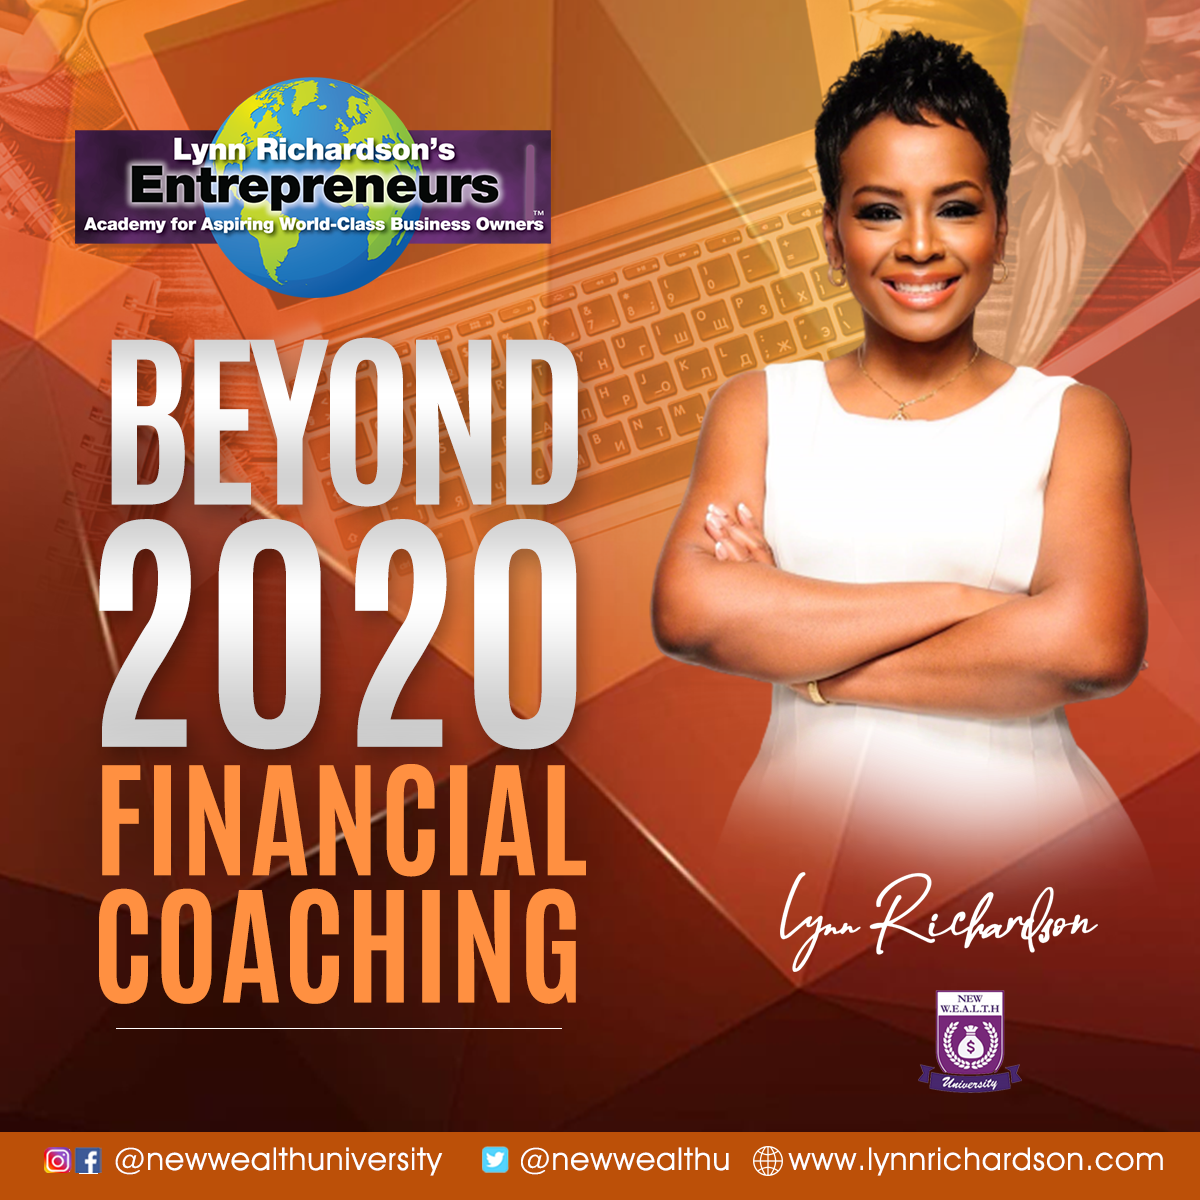 BEYOND 2020 FINANCIAL COACHING - ONE YEAR PROGRAM - WILL YOU BE ONE OF MY 20BEYOND2020?